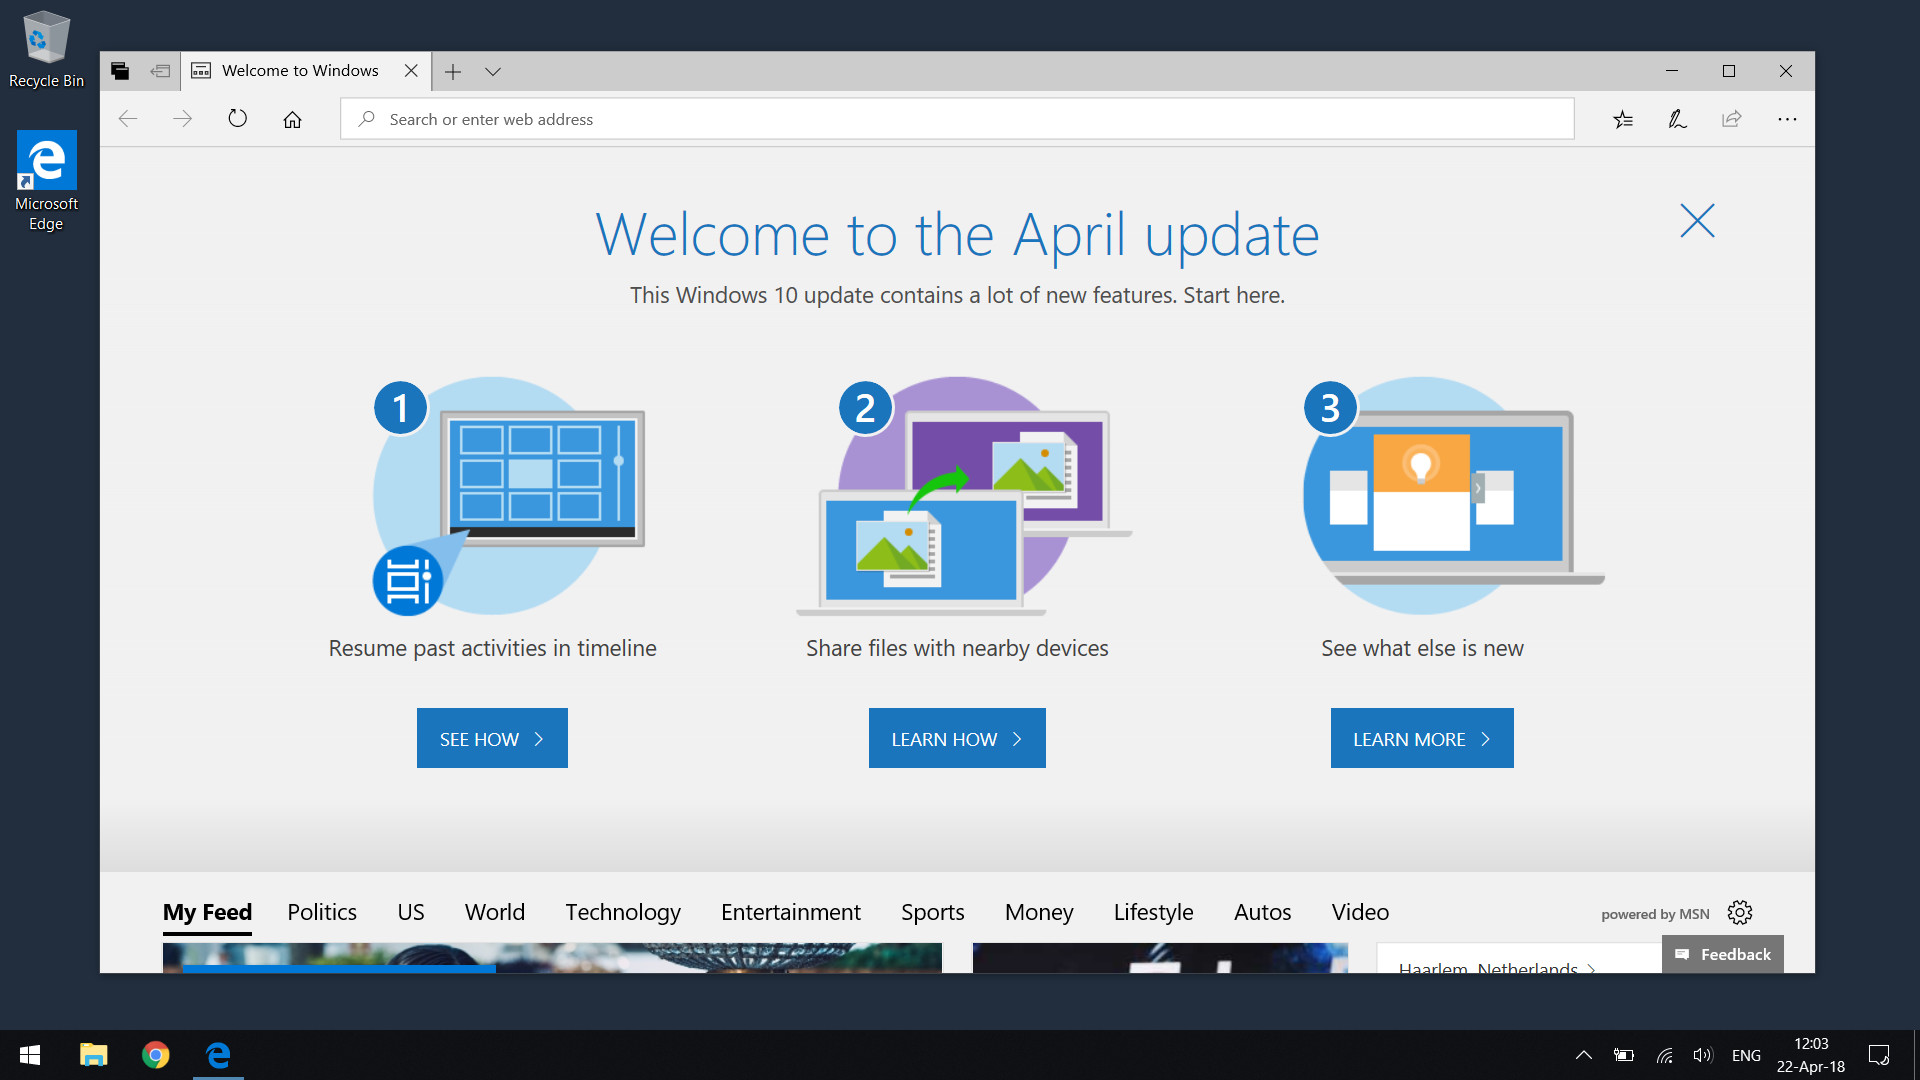 Windows 10 April update is the official name for version 1803